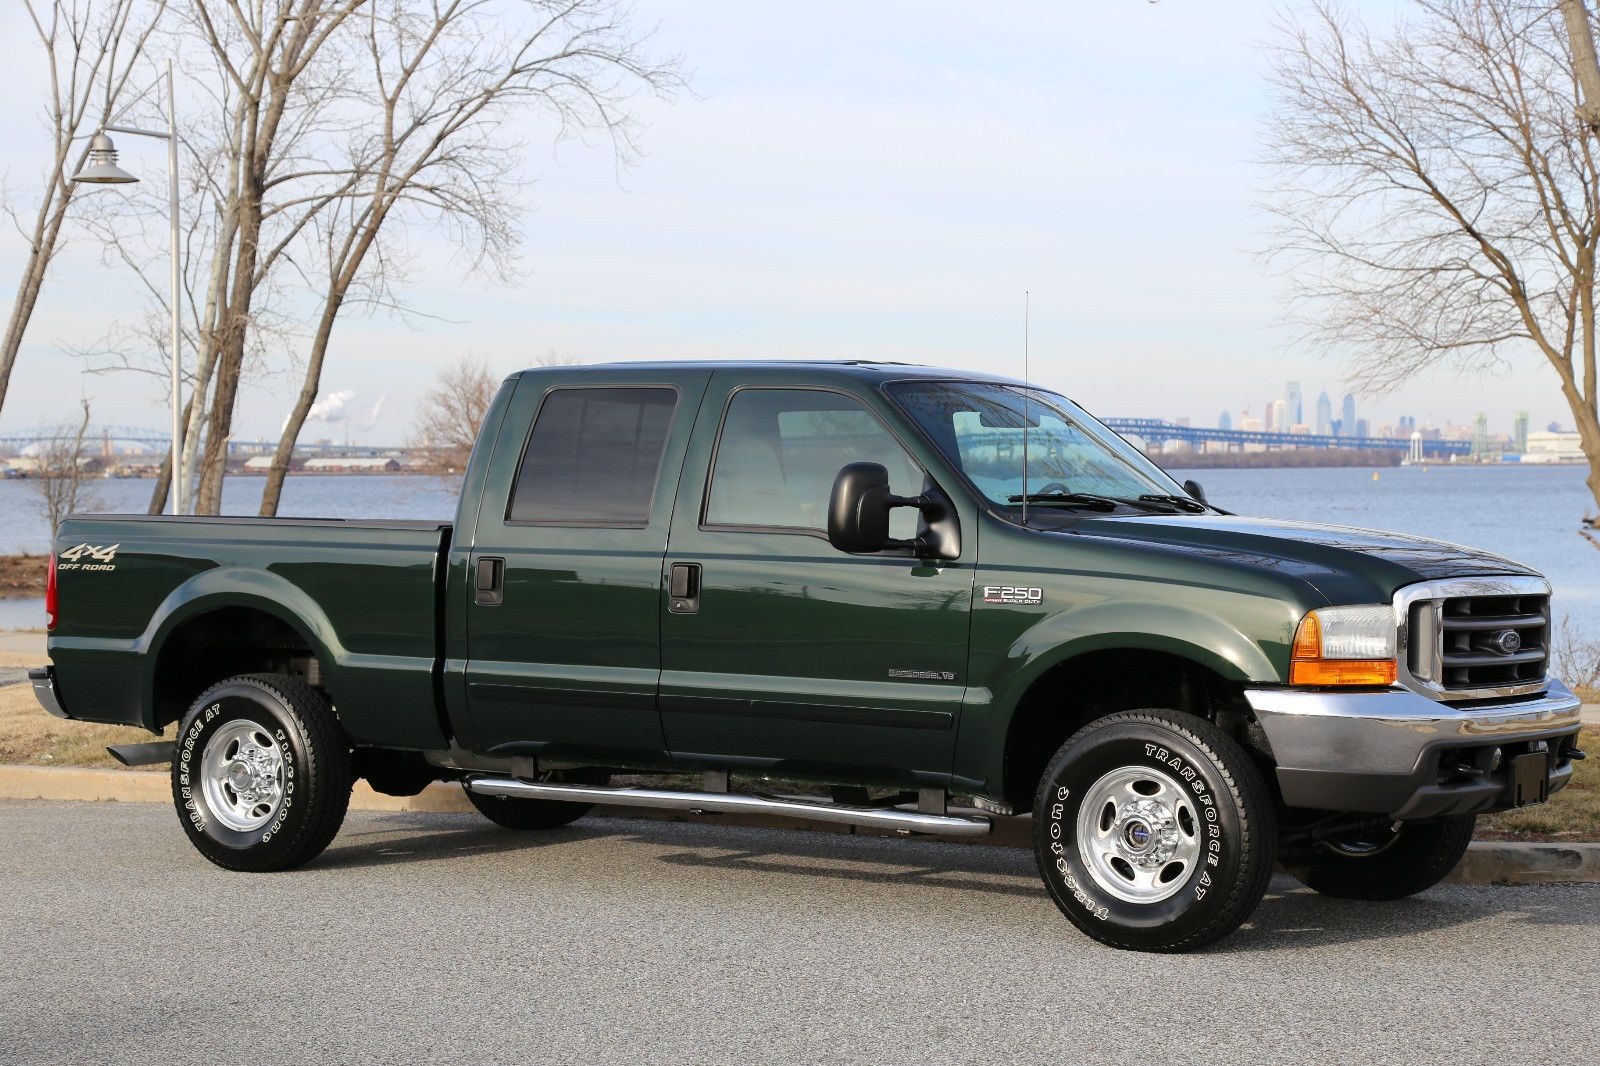 2001 Ford F 250 Lariat 73 Crew Cab Diesel Pickups For Sale 1961 4x4 Truck